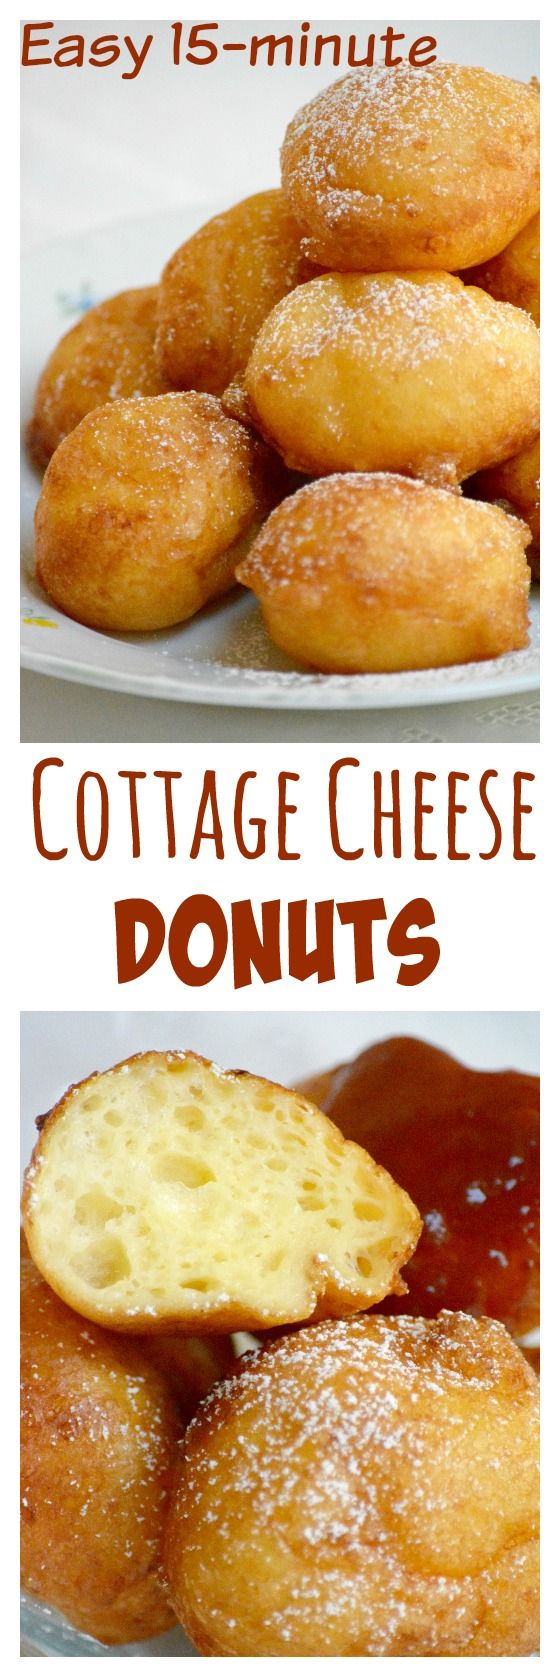 hungarian cottage cheese donuts t r f nk rezept. Black Bedroom Furniture Sets. Home Design Ideas